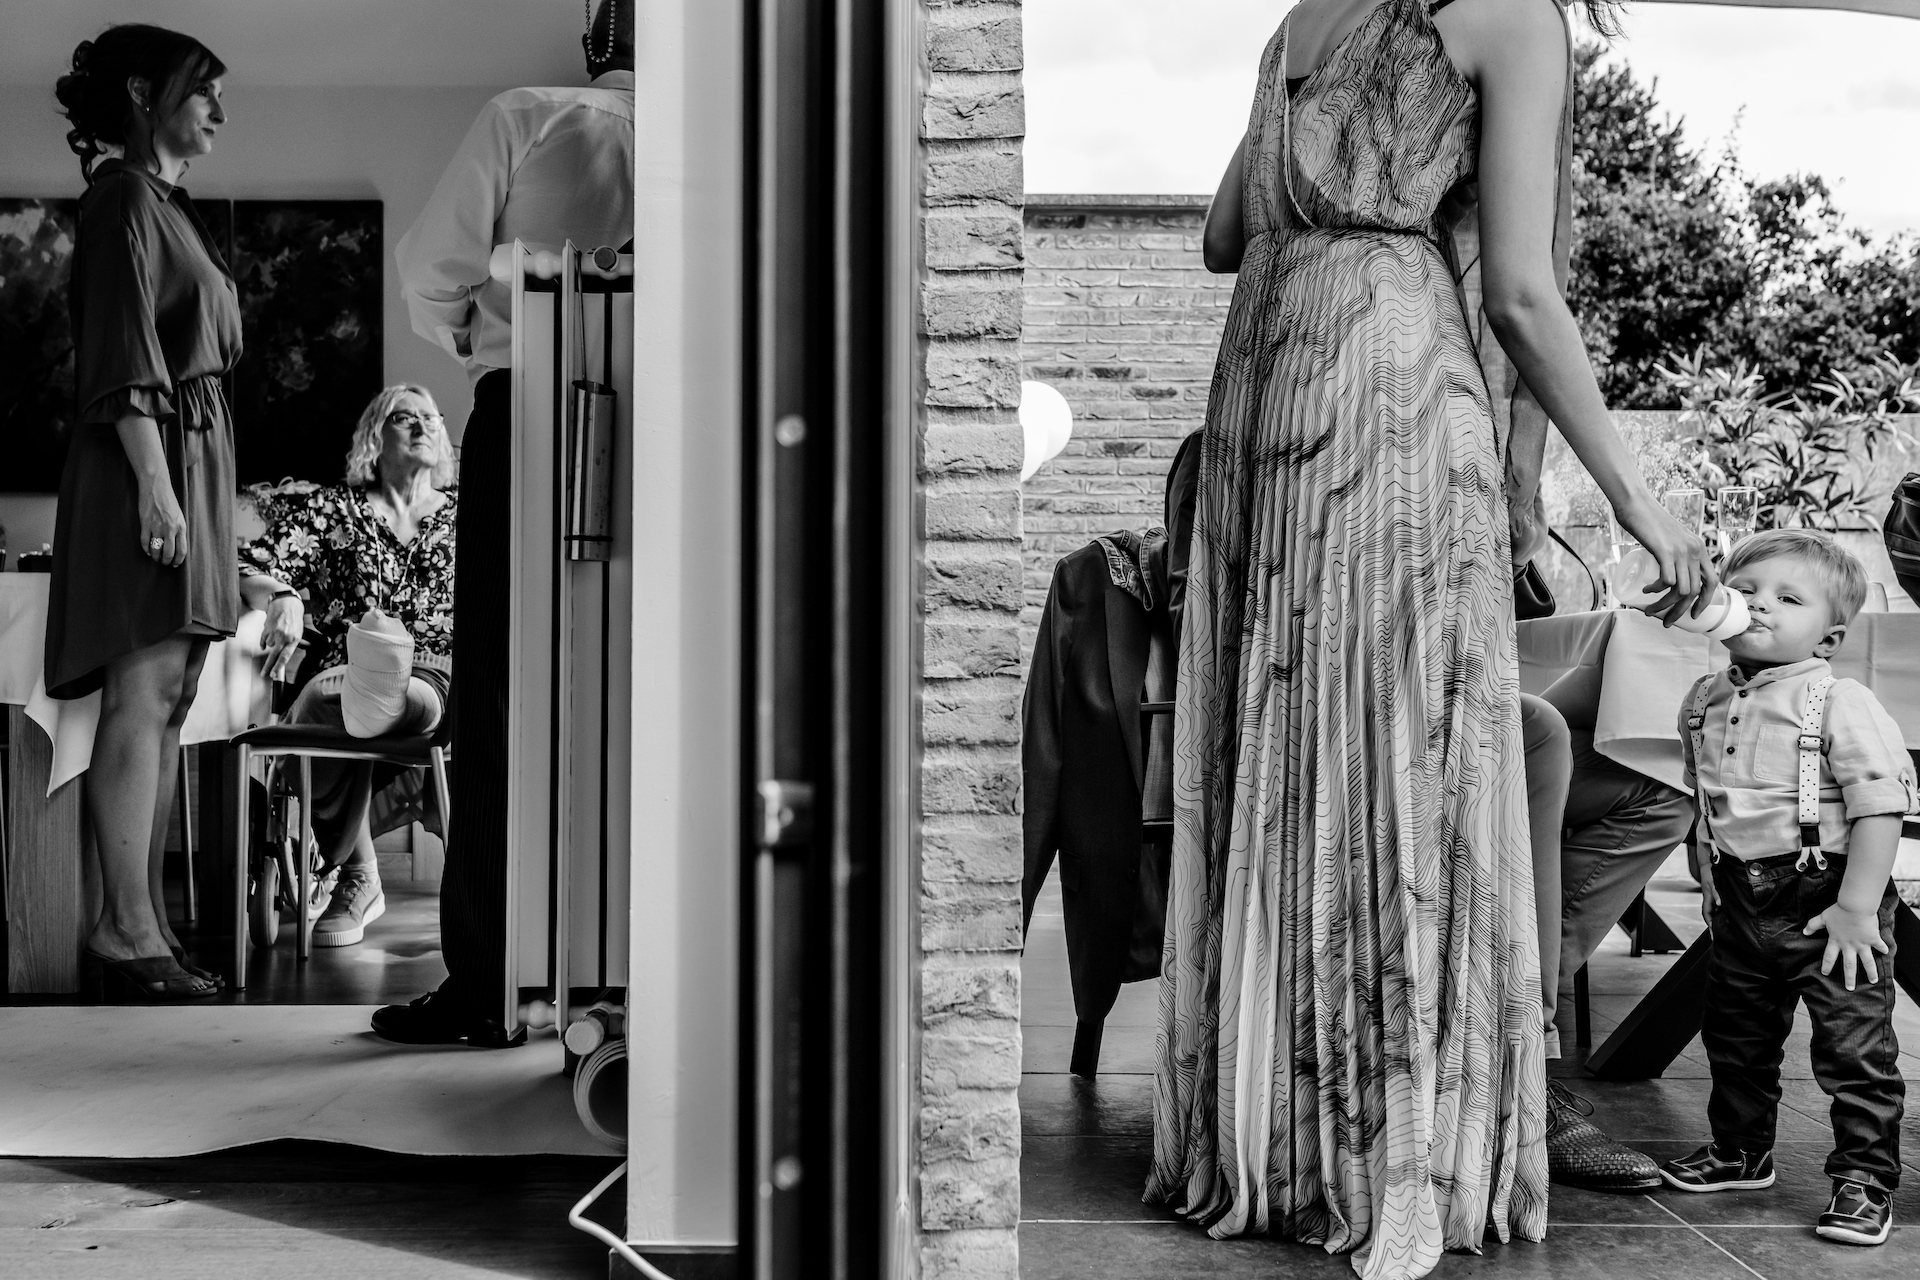 Civil Ceremony Elopement Image from Belgium | Standing halfway between the doors to the patio, we can see the bride's mother sitting down inside